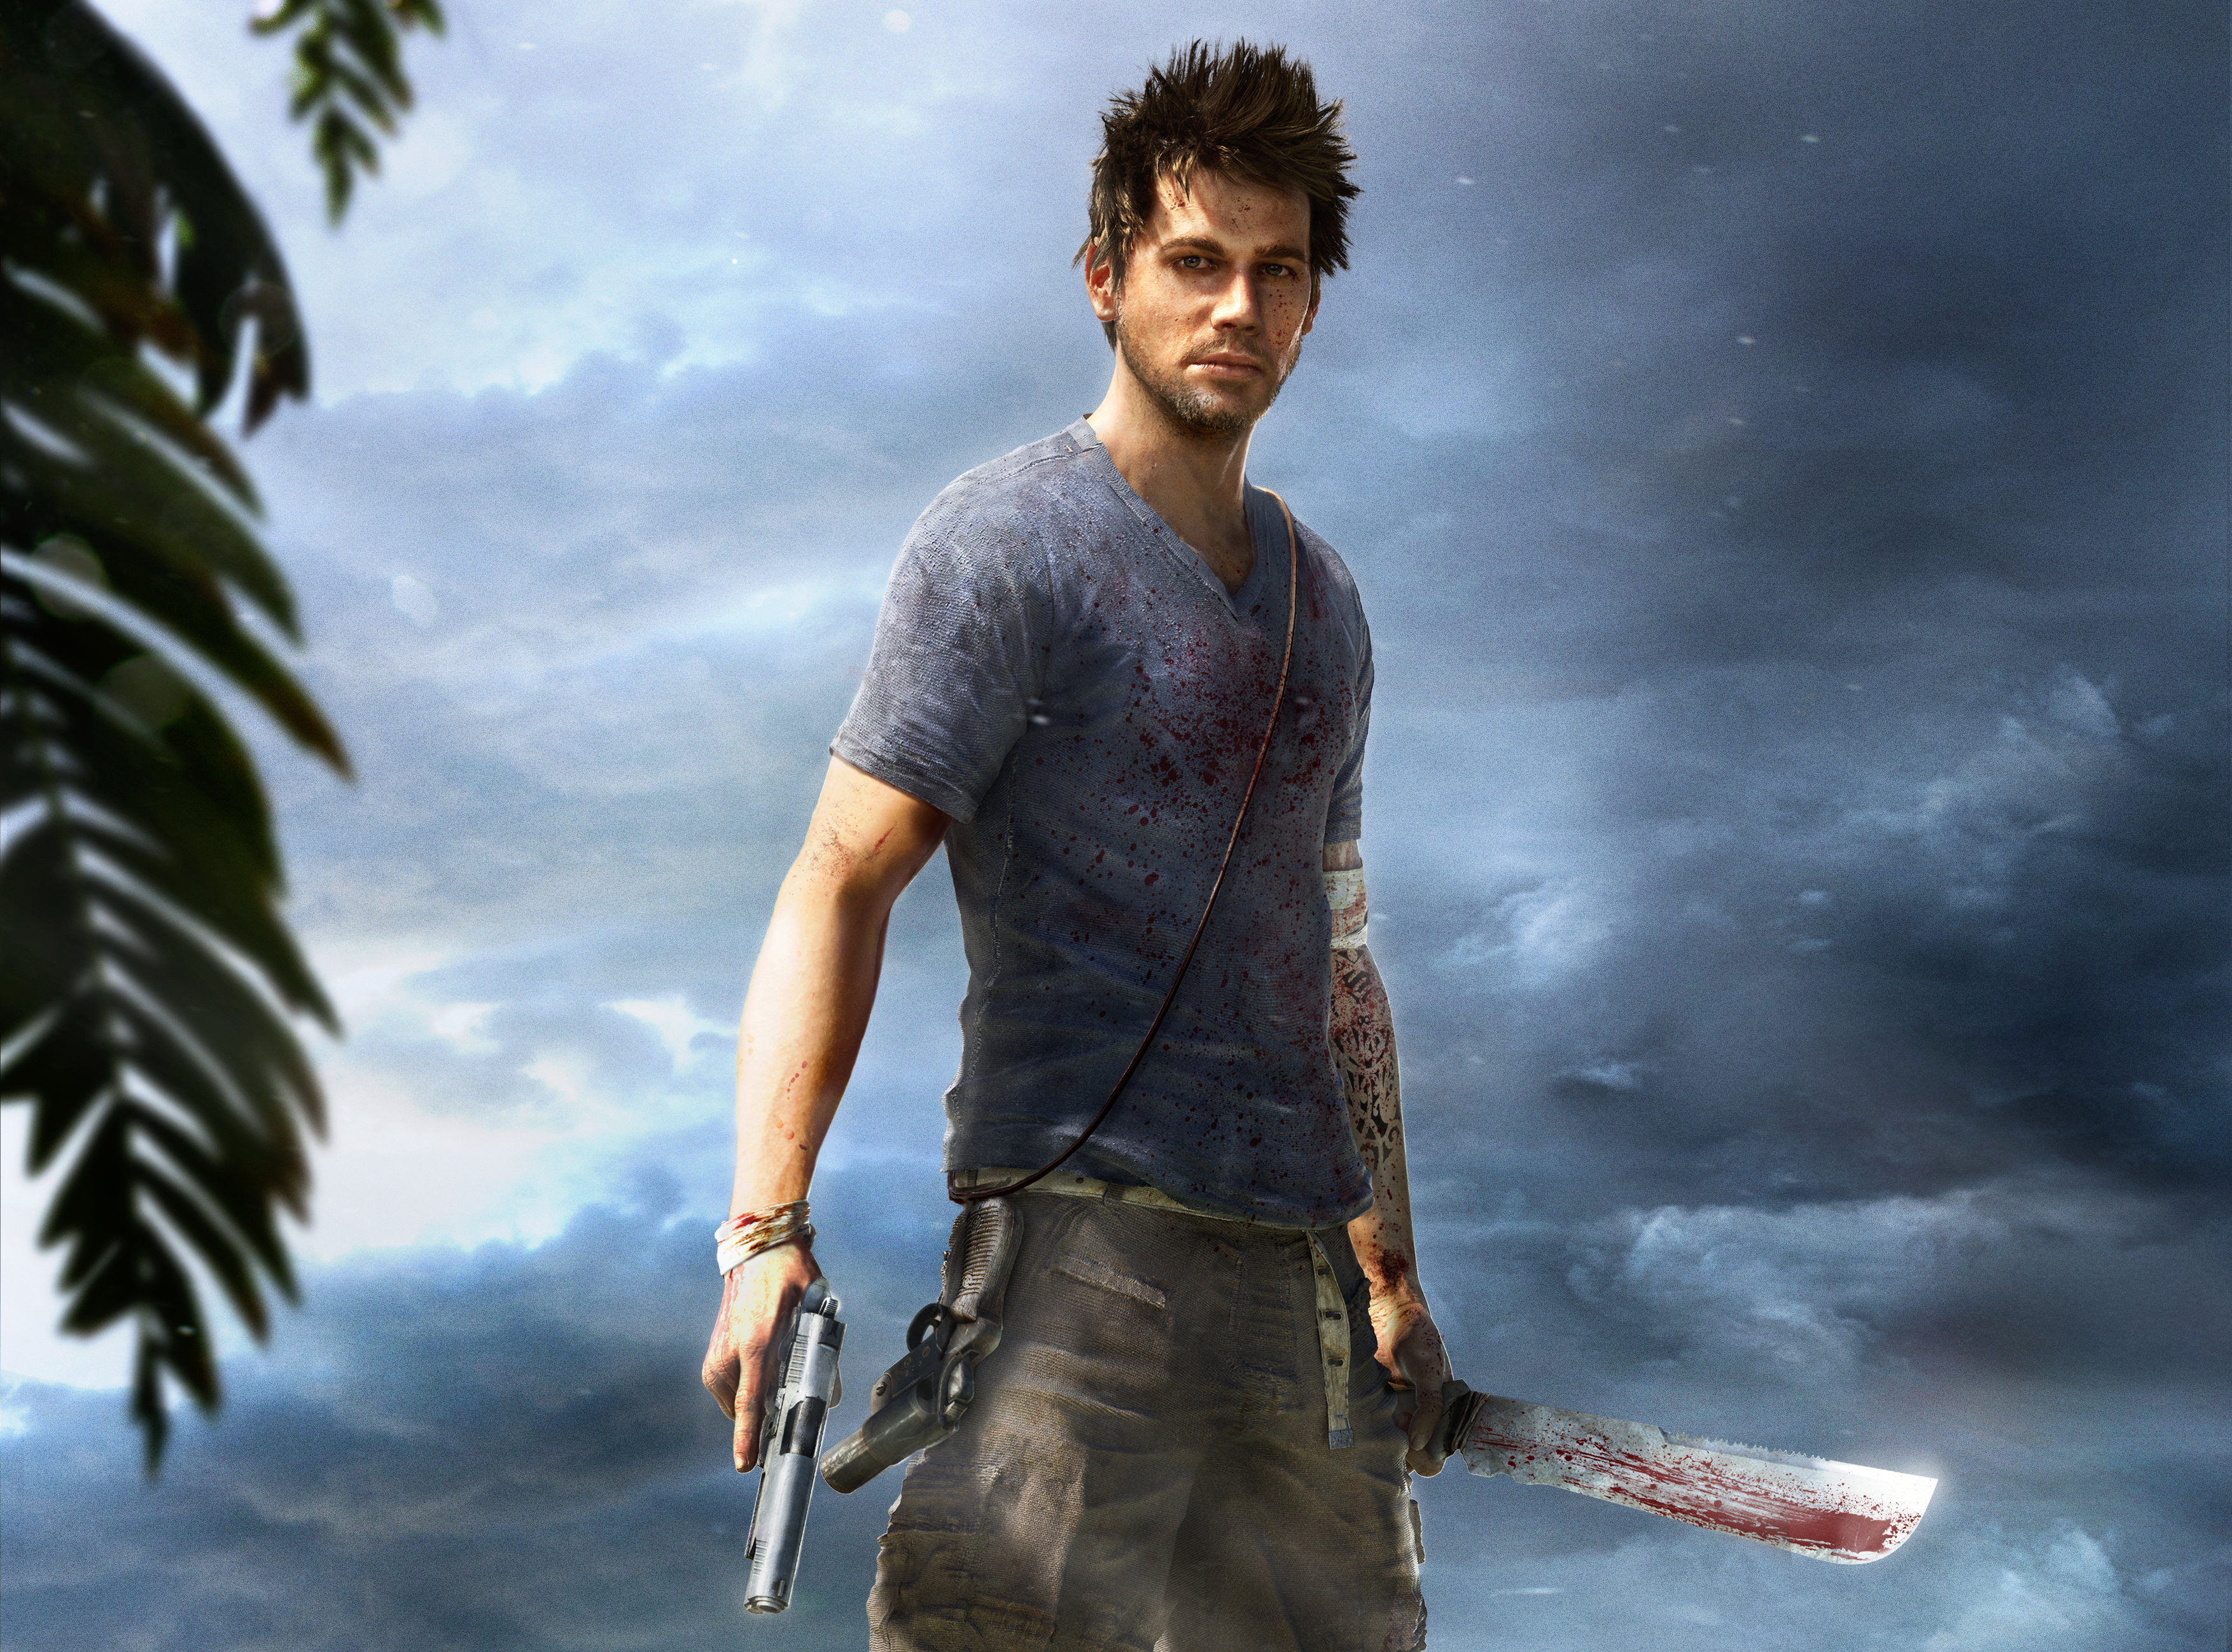 Far Cry 3 Hd Wallpapers Pictures Images